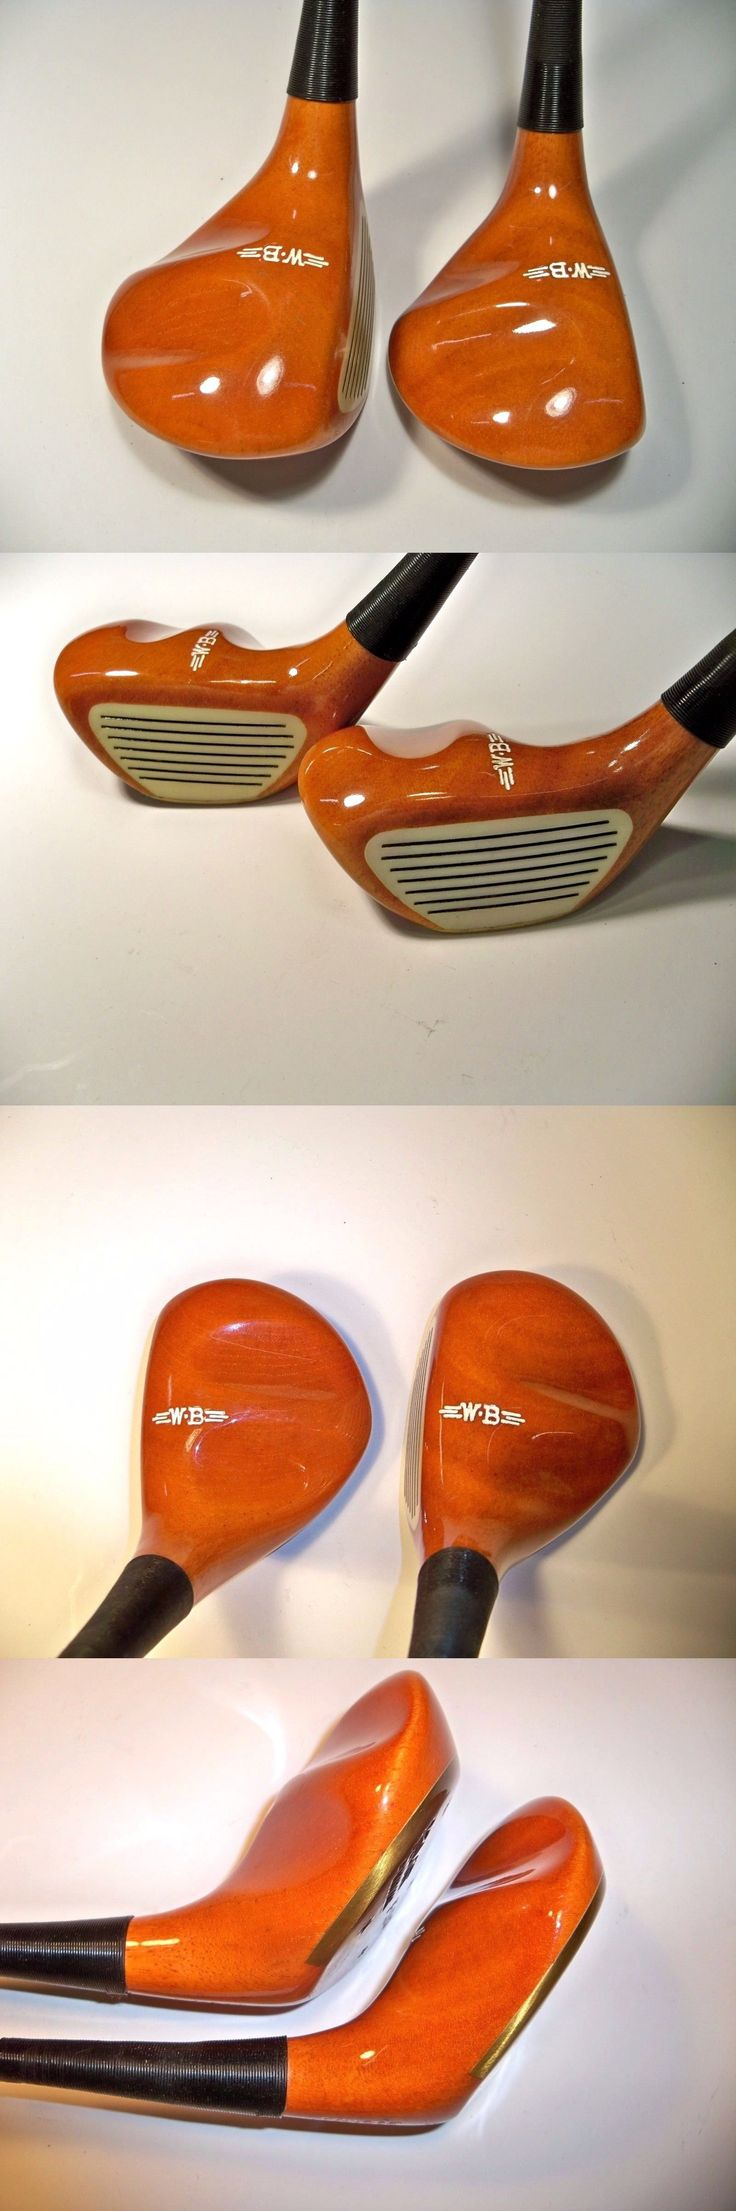 Vintage Golf Clubs and Shafts 83043: Wood Brothers Kool Cat F-3.5 And F-4.5 Cork Filled Vintage Persimmon Rh Golf Clubs BUY IT NOW ONLY: $139.0